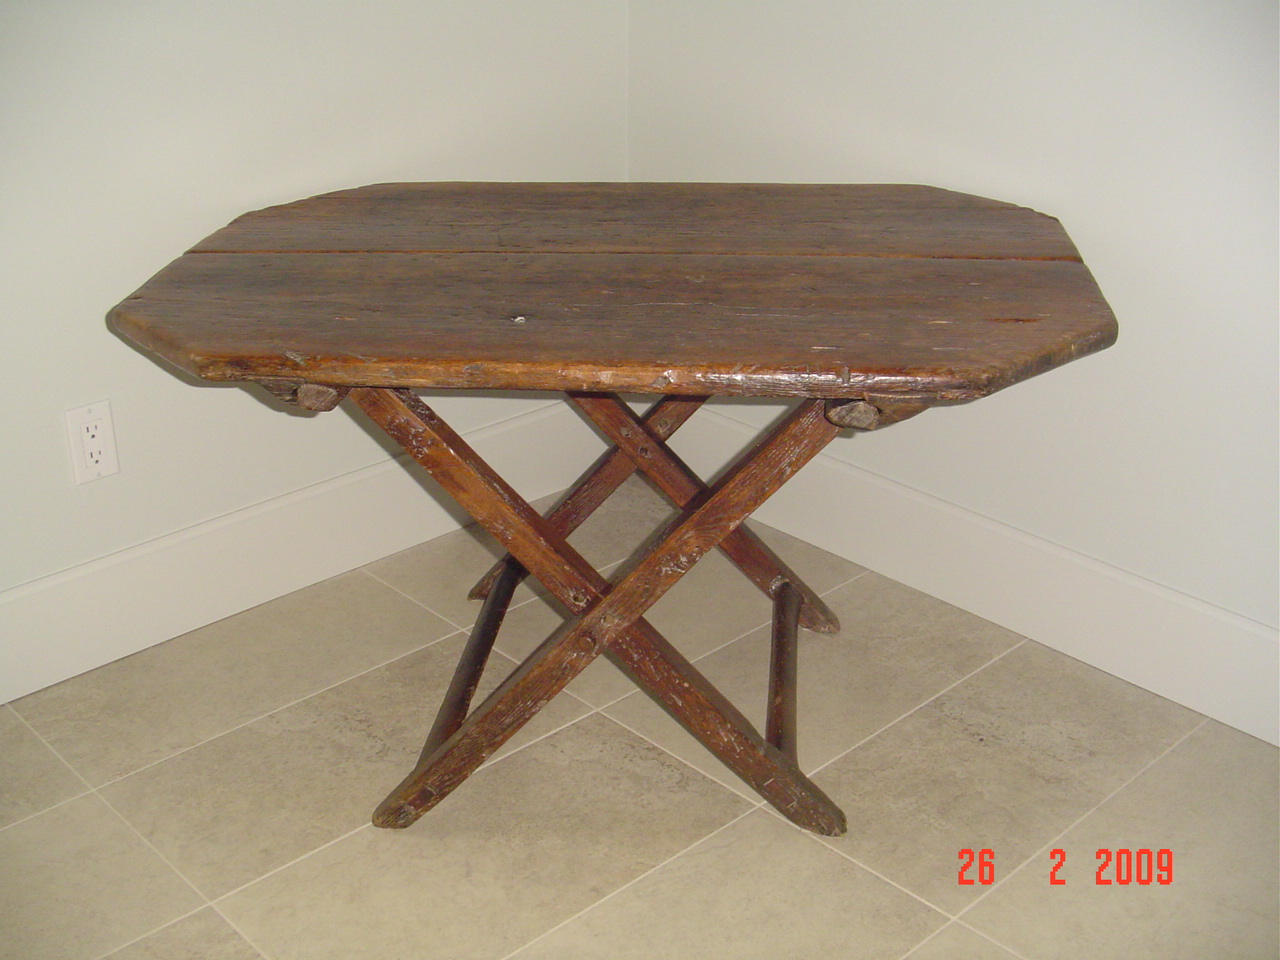 PRIMITIVE TRESTLE TABLE Canadian pine wood furniture